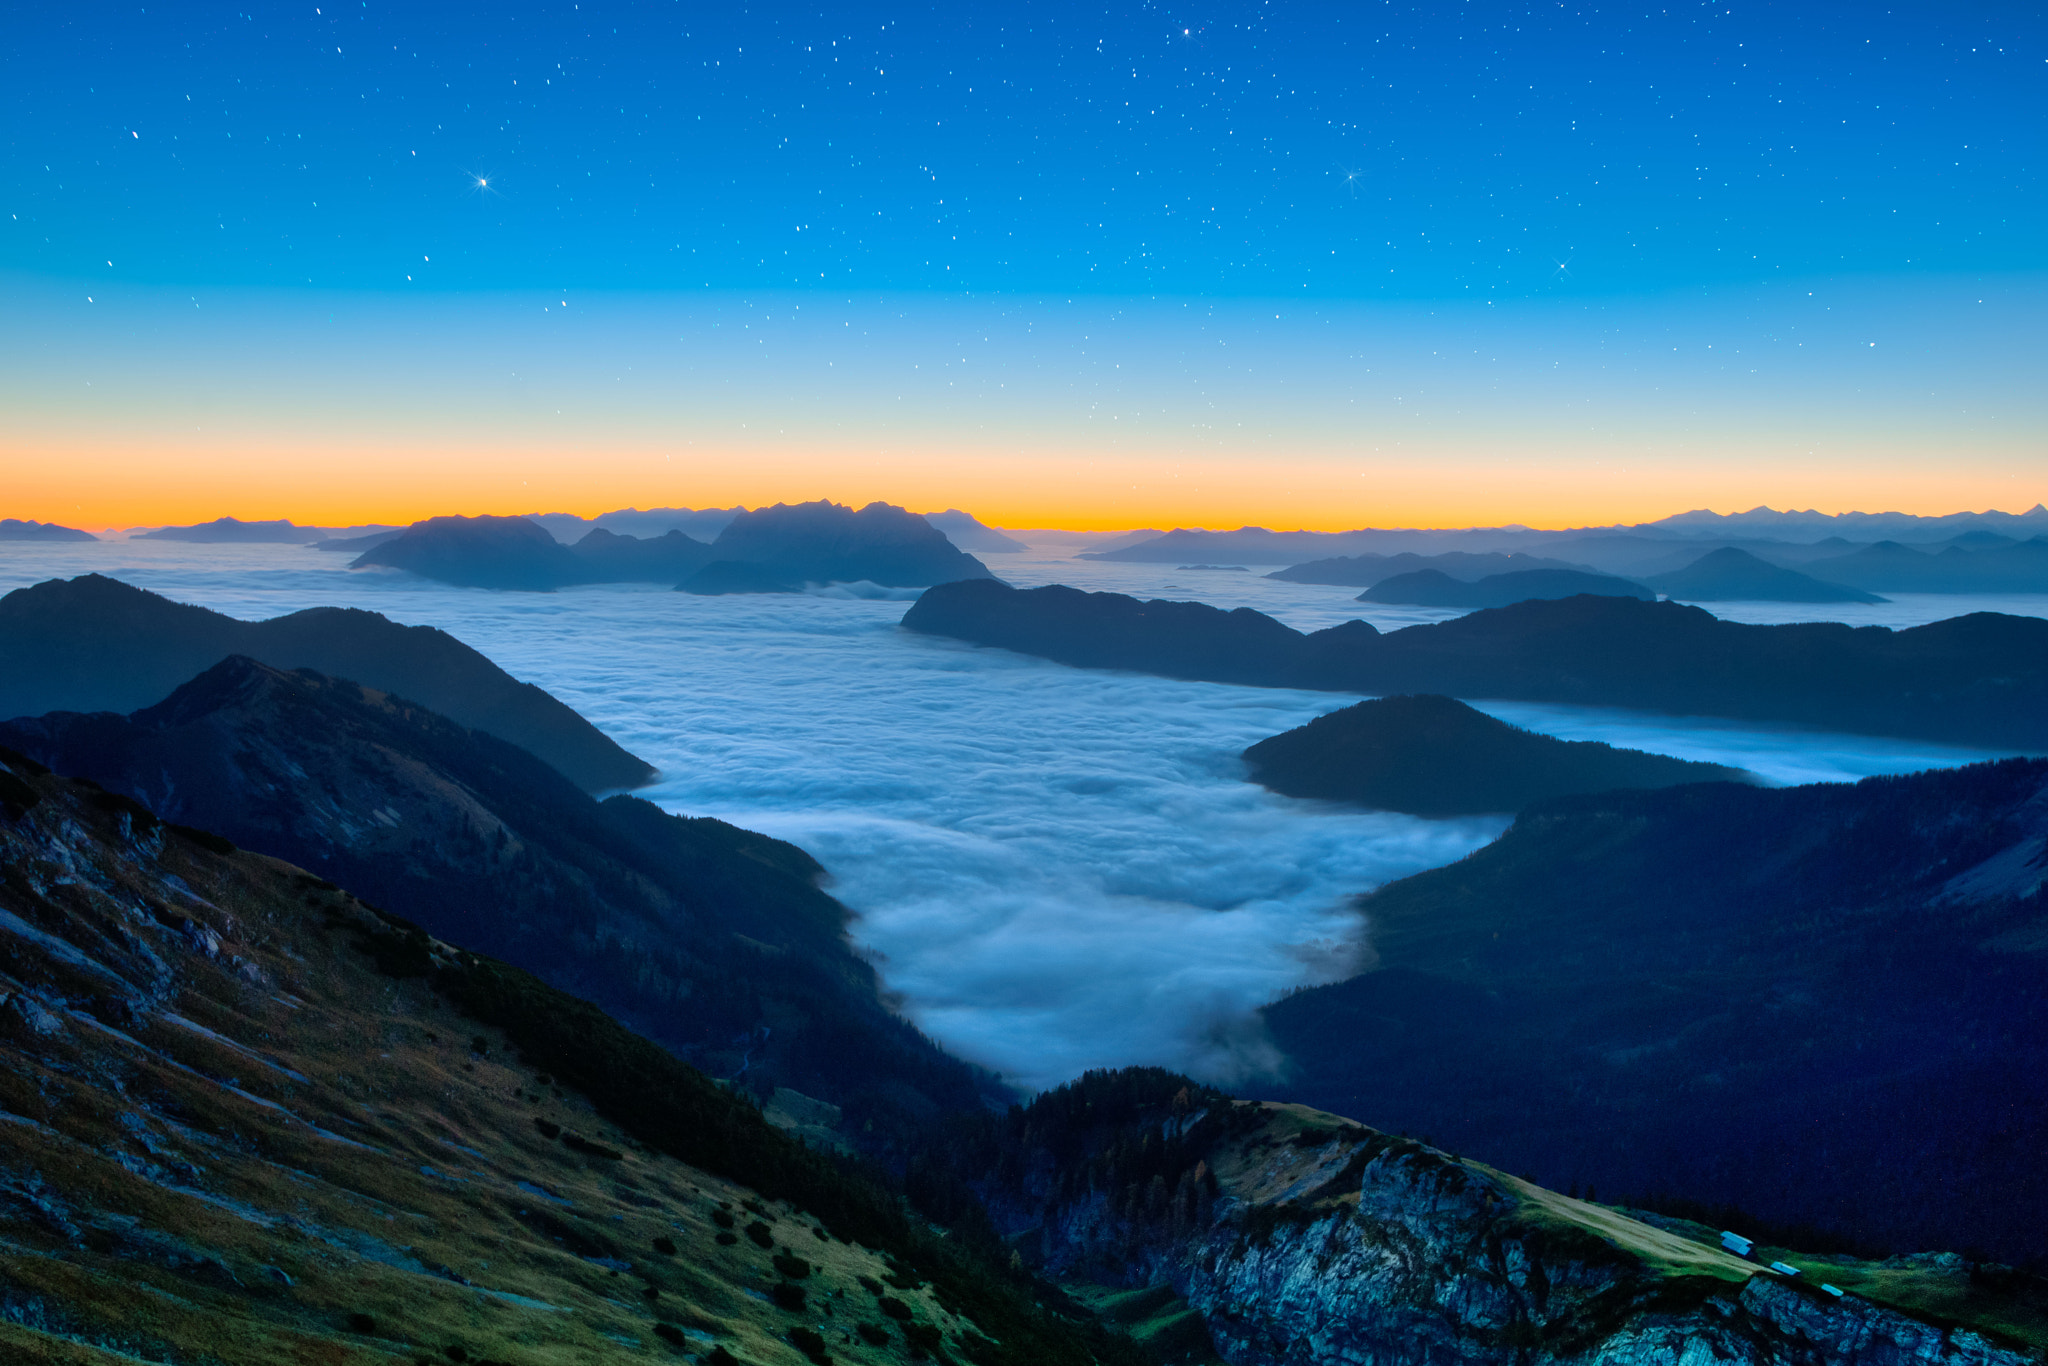 Photograph Sea of clouds by Stefan Thaler on 500px